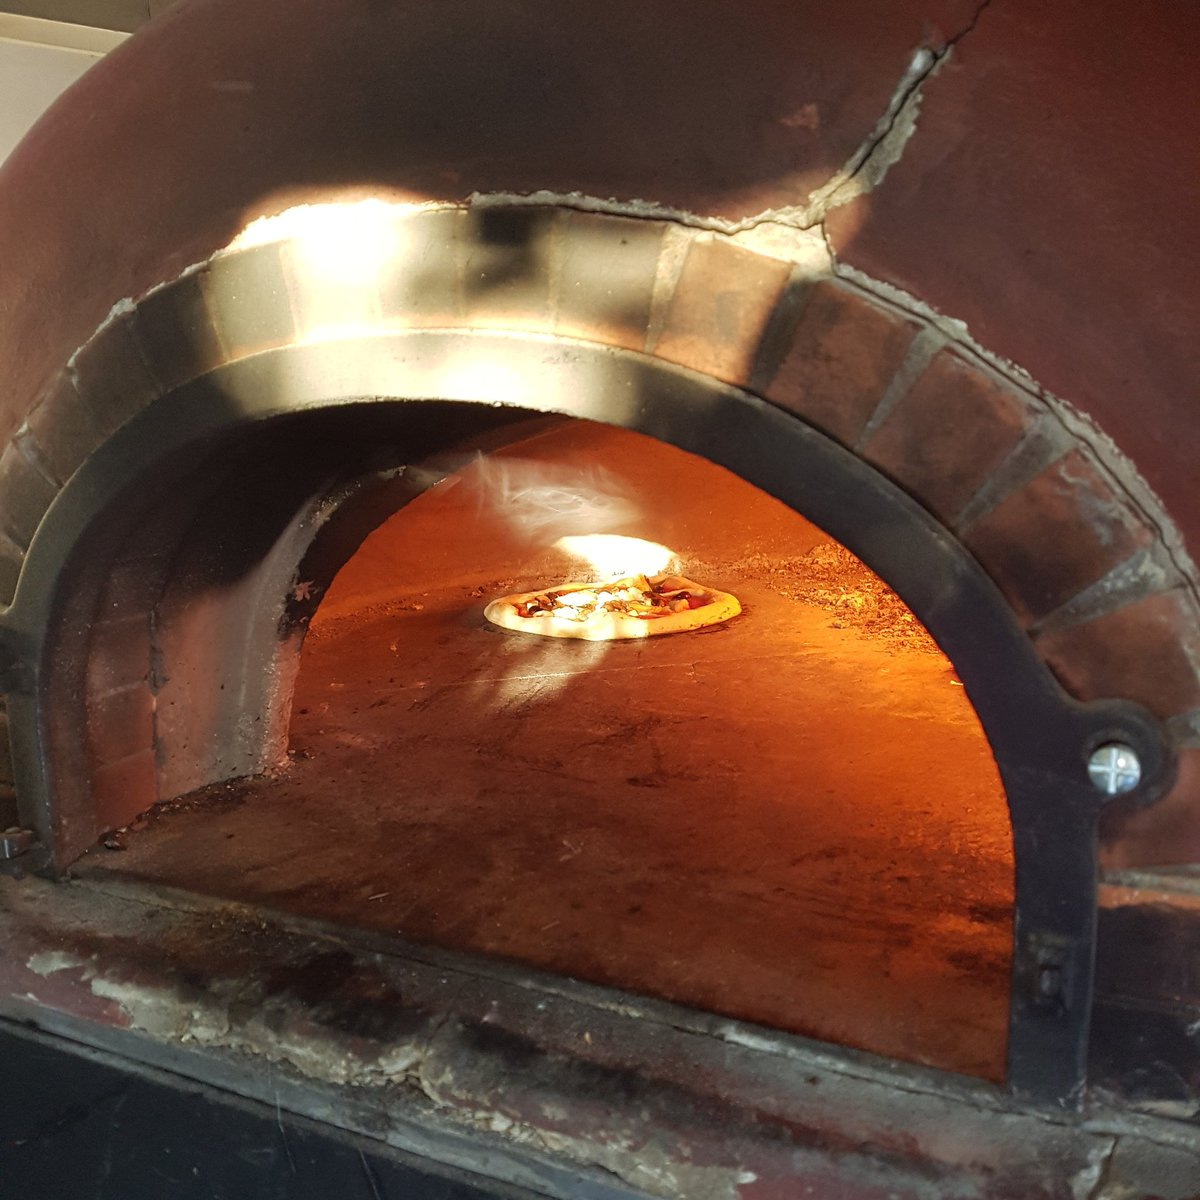 Oven&#39;s shining BRIGHT even if the sun ain&#39;t @TheCrownPubSE10 this #bankholidaymonday . Come on over for #pizza delights from 5:30pm! <br>http://pic.twitter.com/CibsdIkzZ4